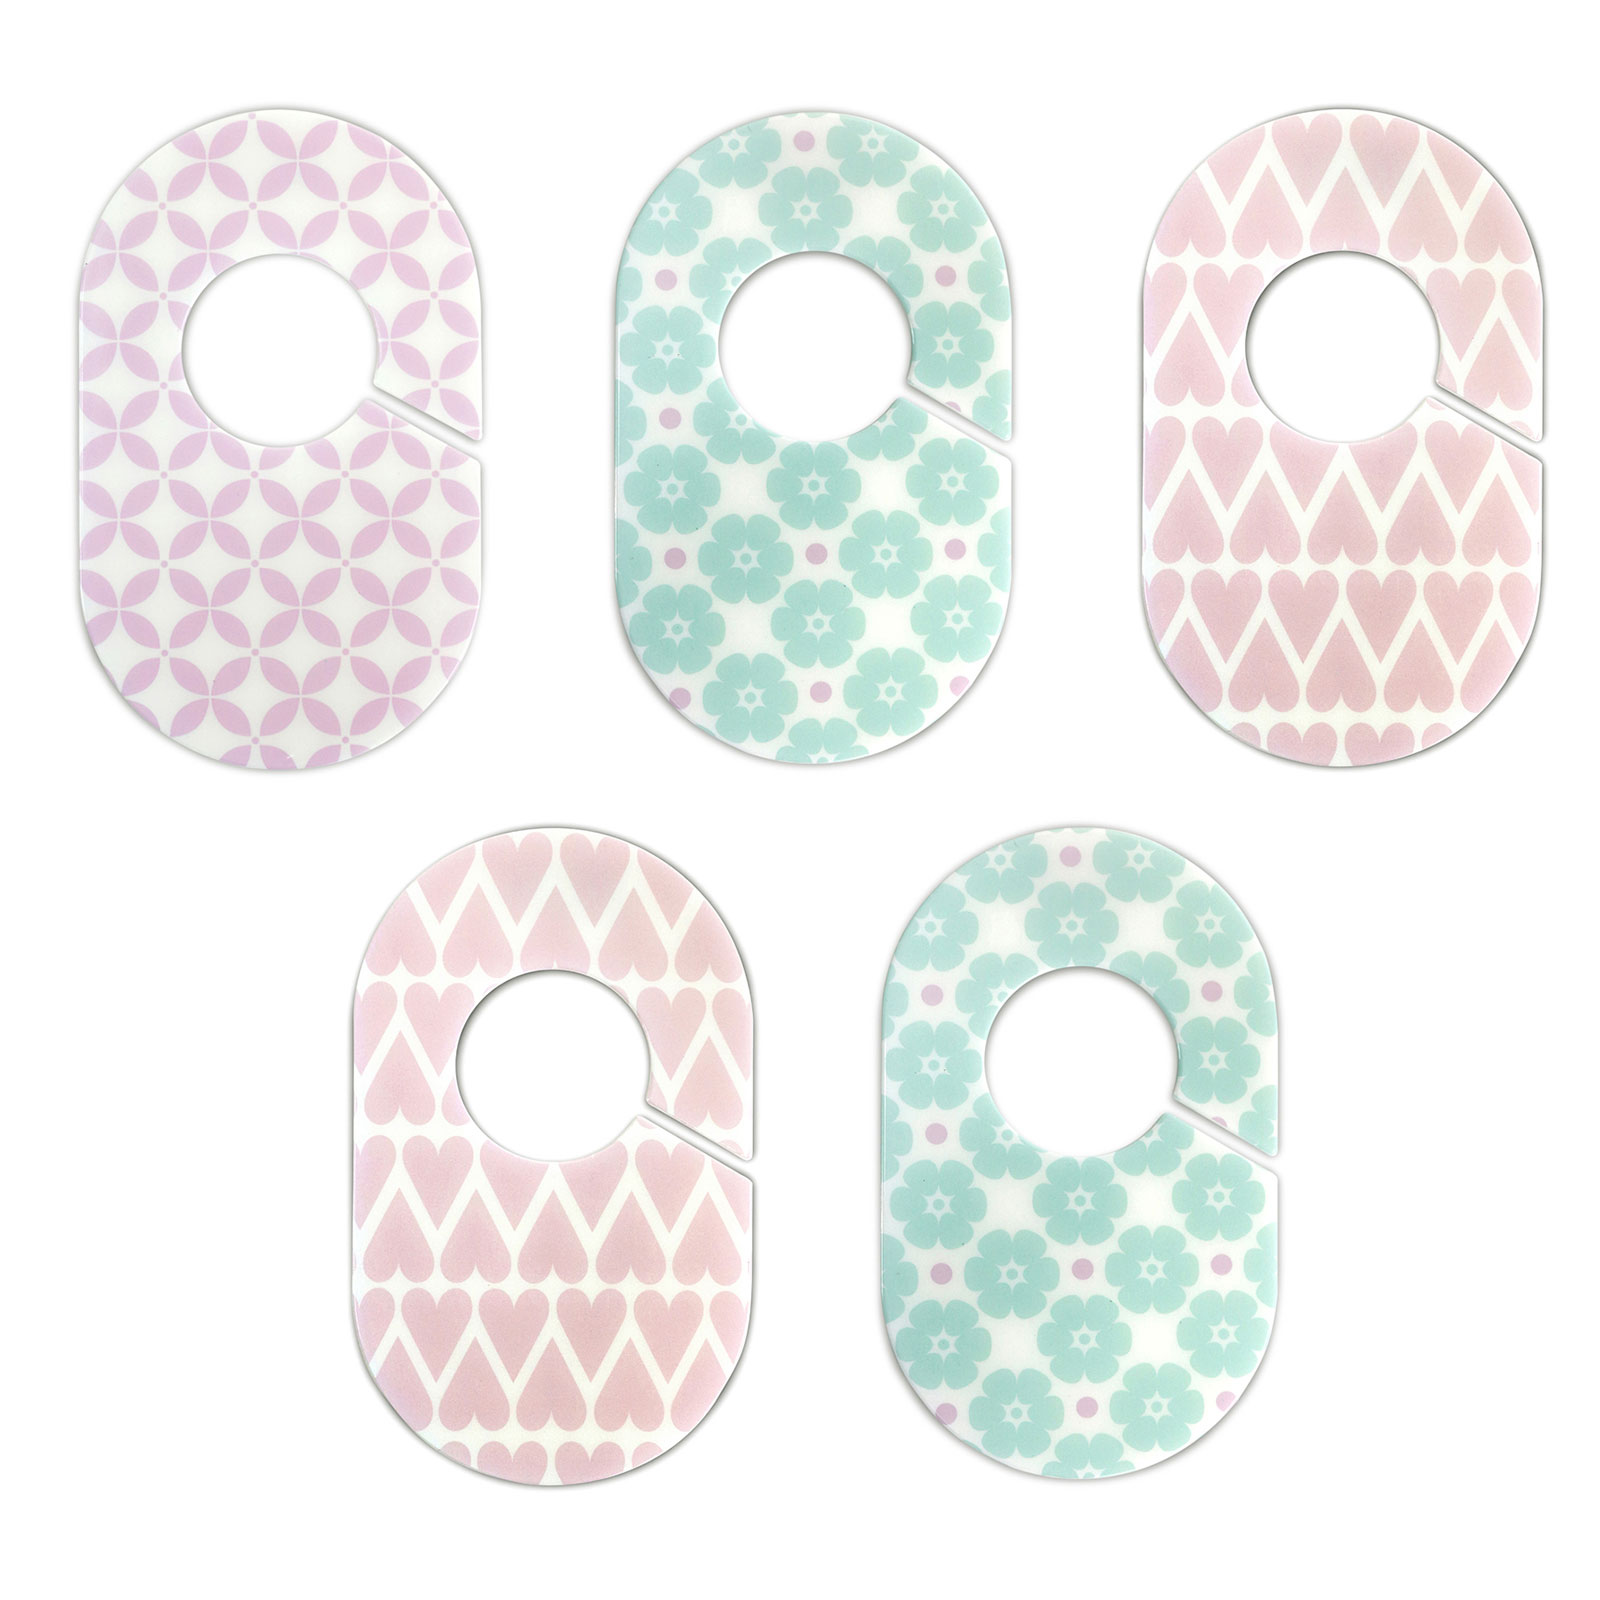 Superieur Little Haven Nursery Closet Organizers Dividers   Gray And White Elephant  And Cloud Designs   Set Of 5 Plastic Baby Closet Rod Dividers   Walmart.com